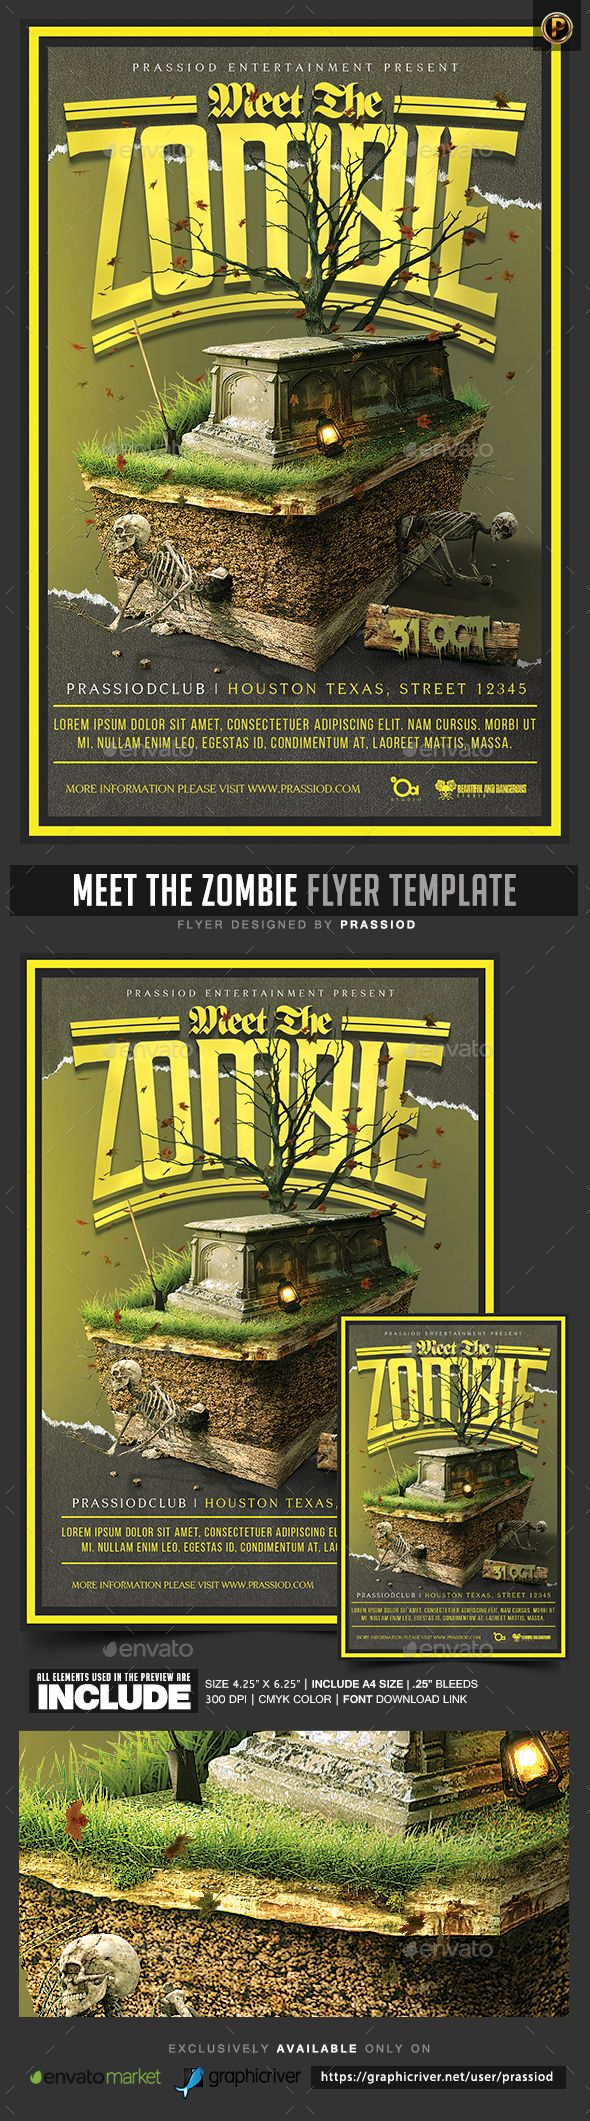 Meet The Zombie Flyer Template  Event Flyers Flyer Template And Met